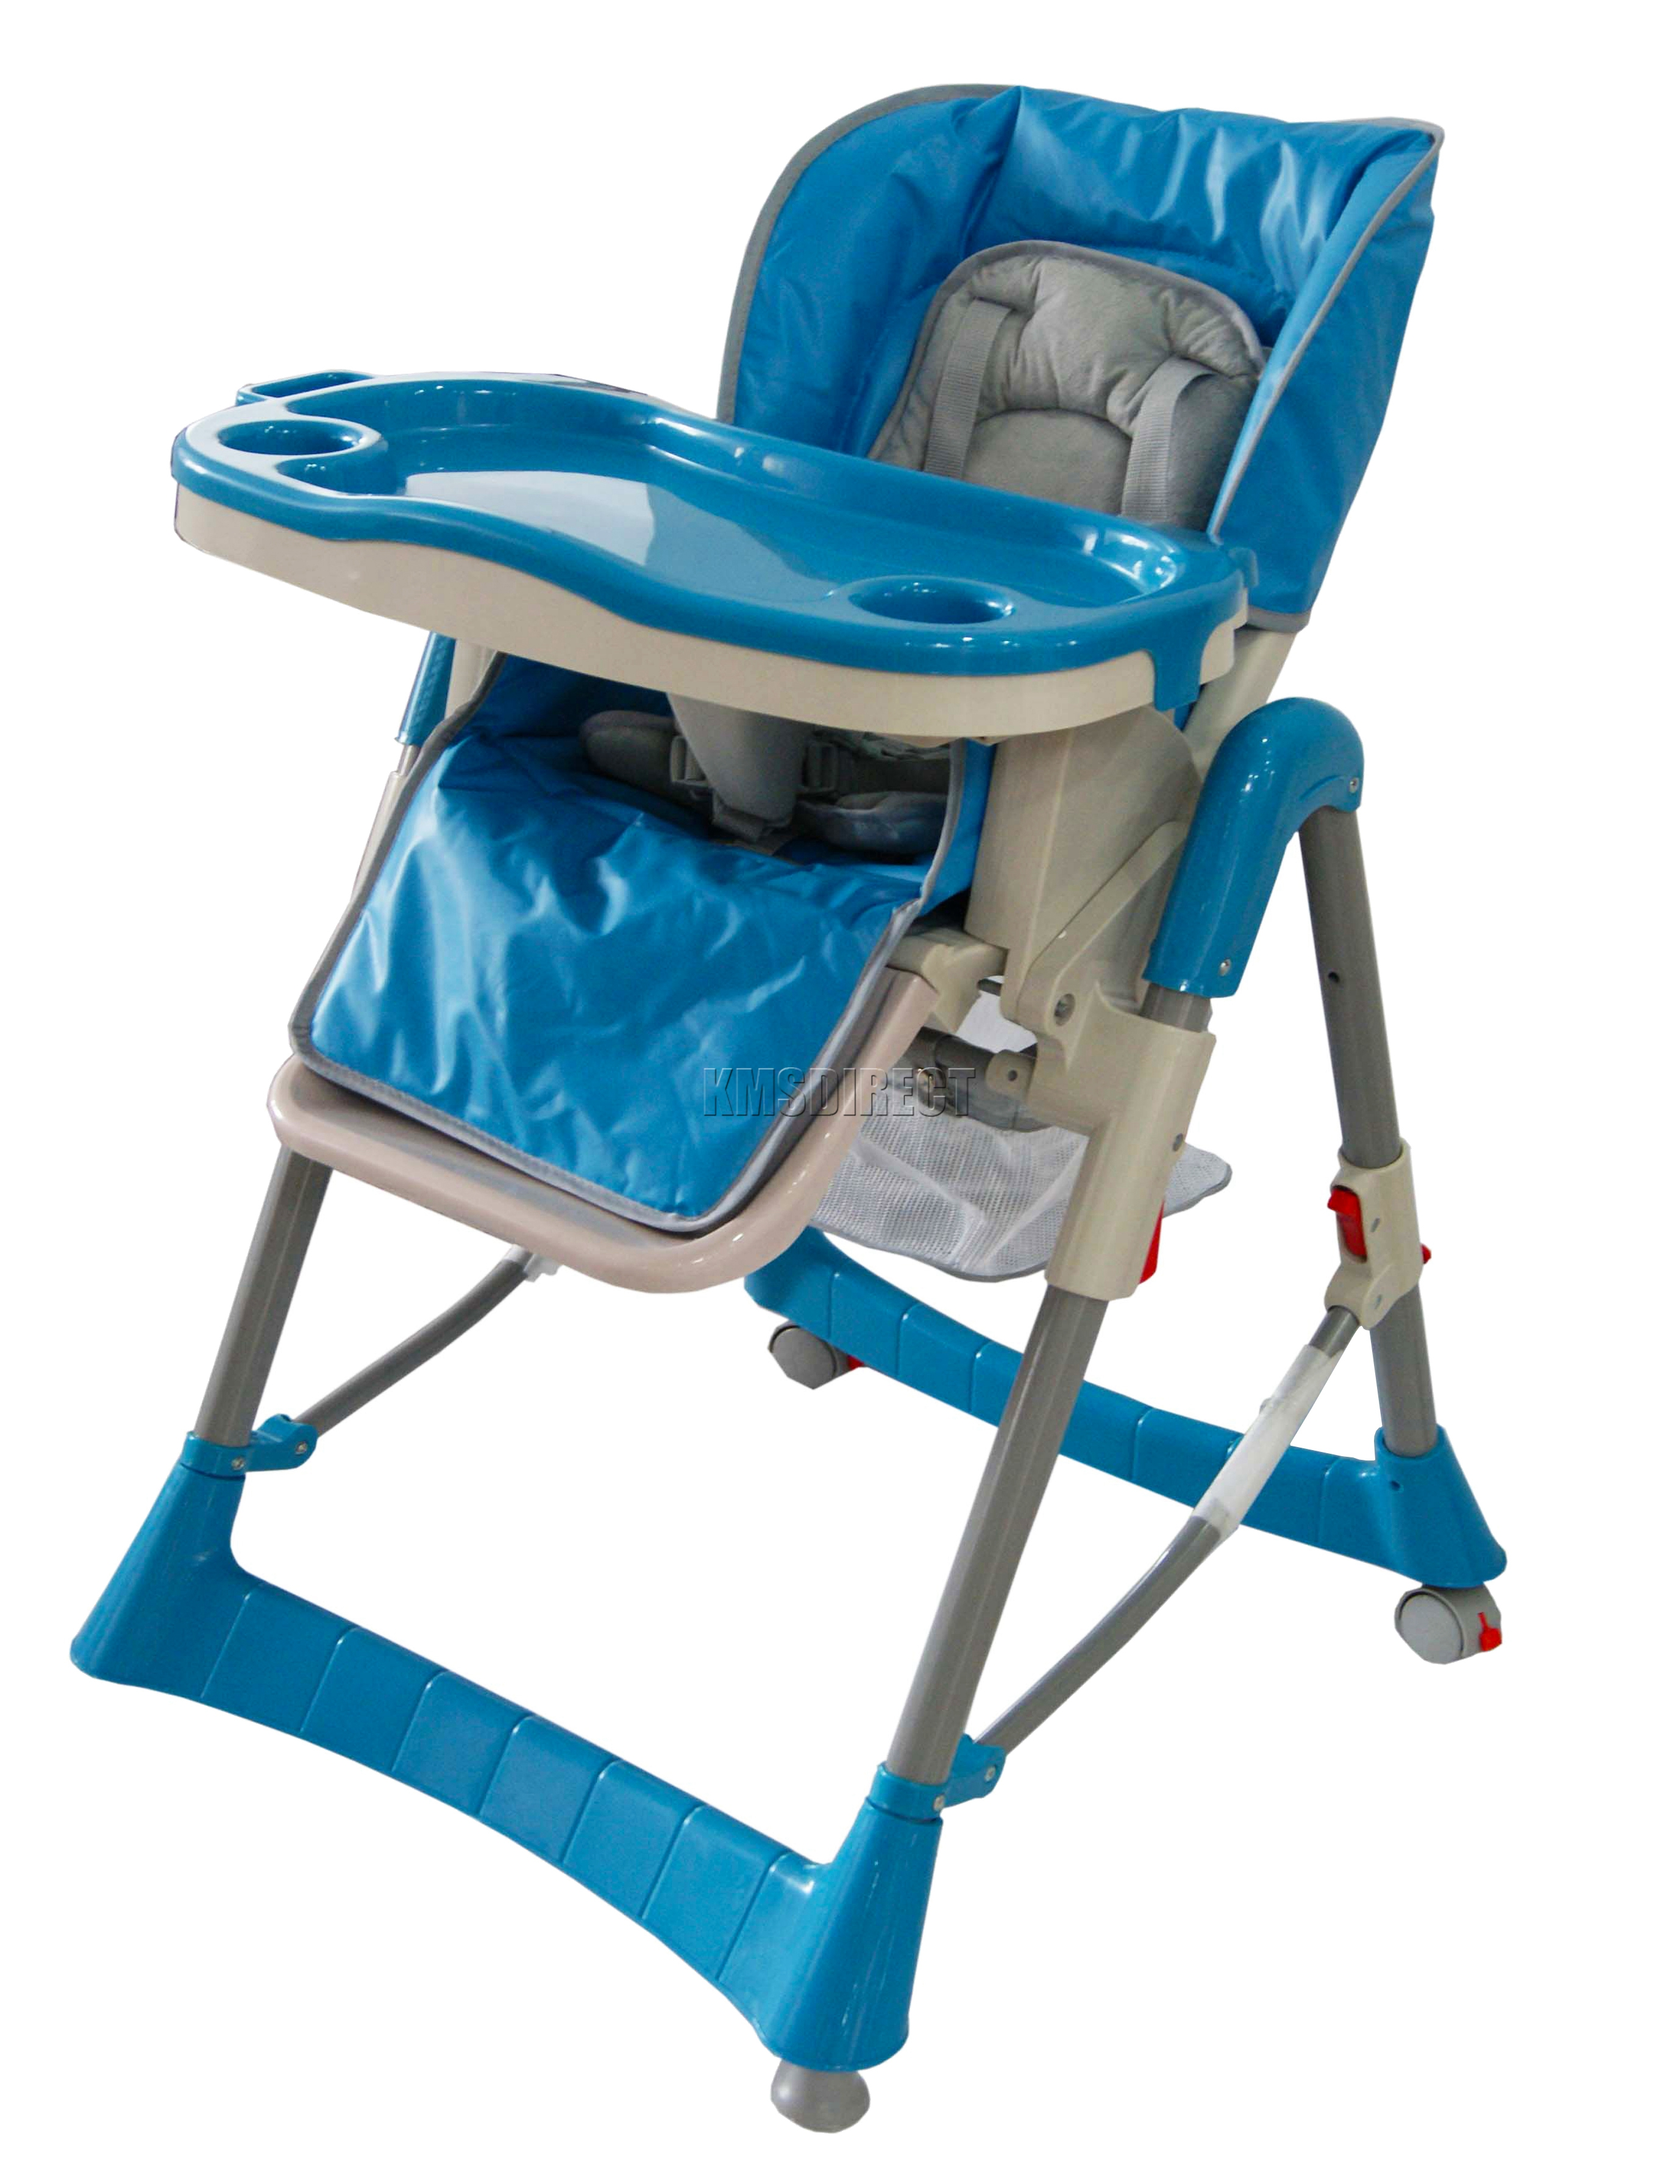 Adjustable High Chair Height Adjustable Baby High Chair Recline Highchair